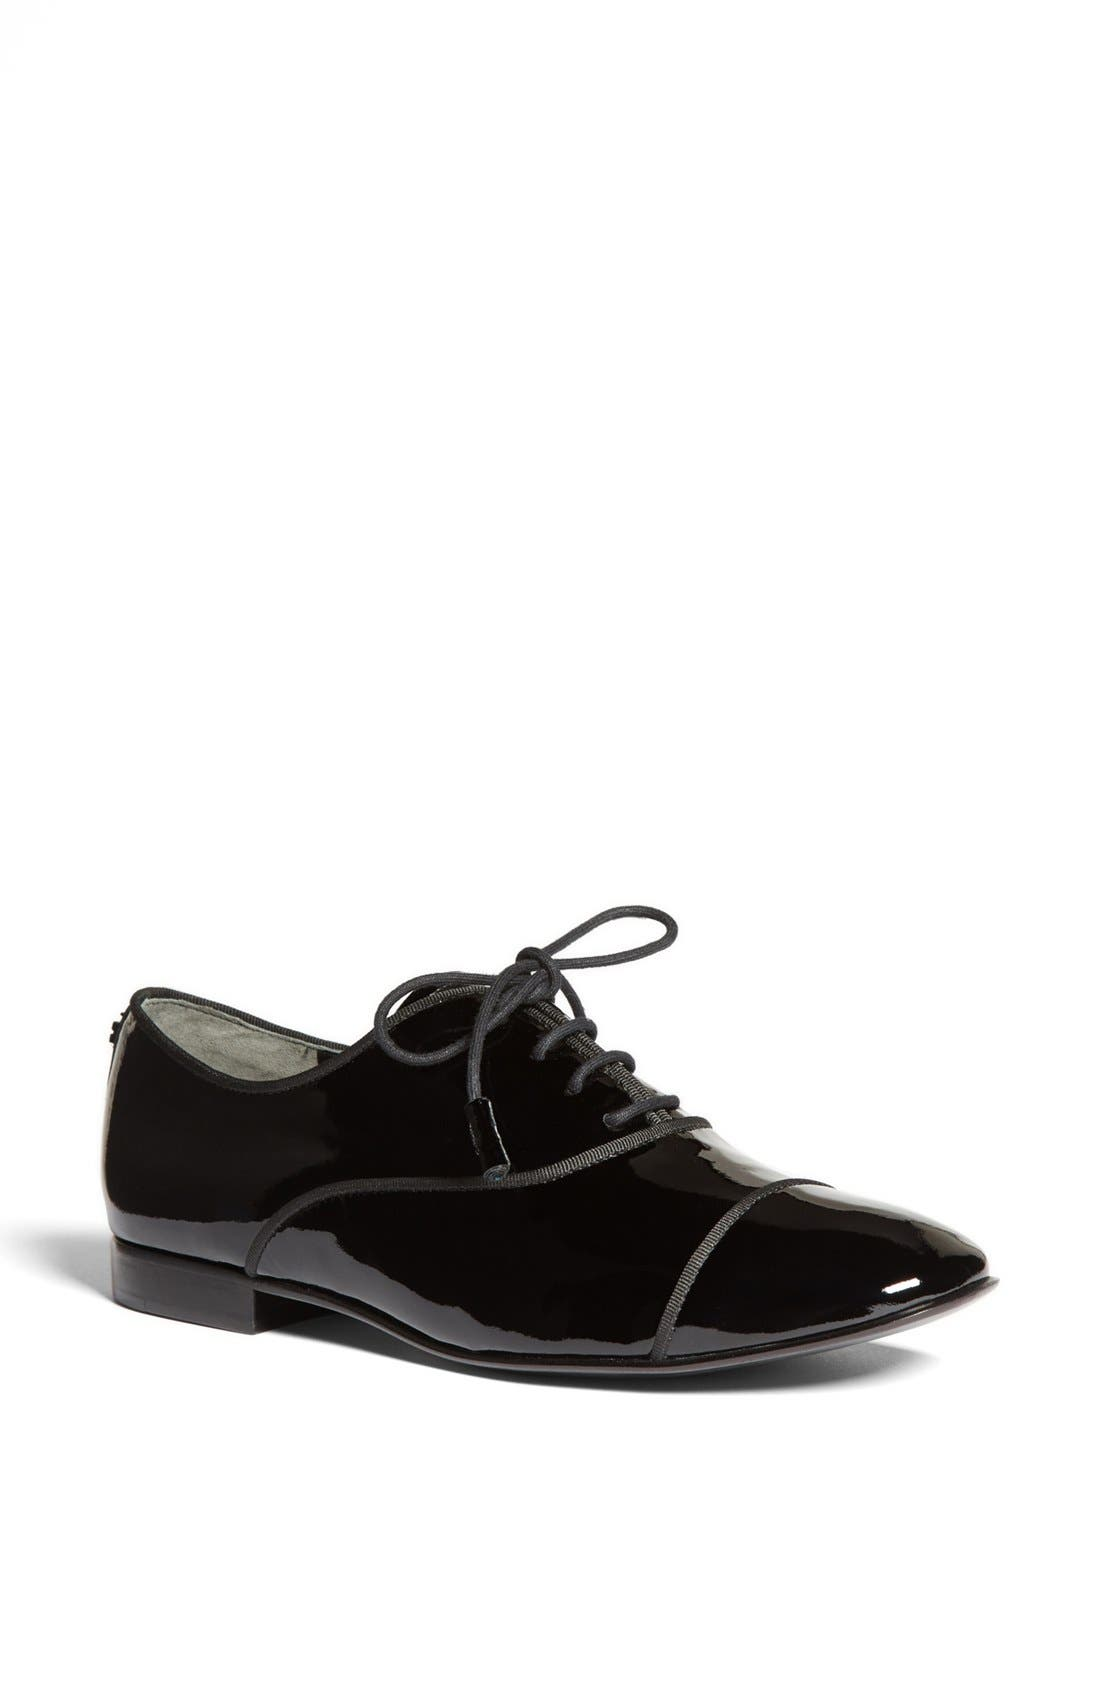 Alternate Image 1 Selected - Tory Burch 'Dylan' Oxford Flat (Online Only)